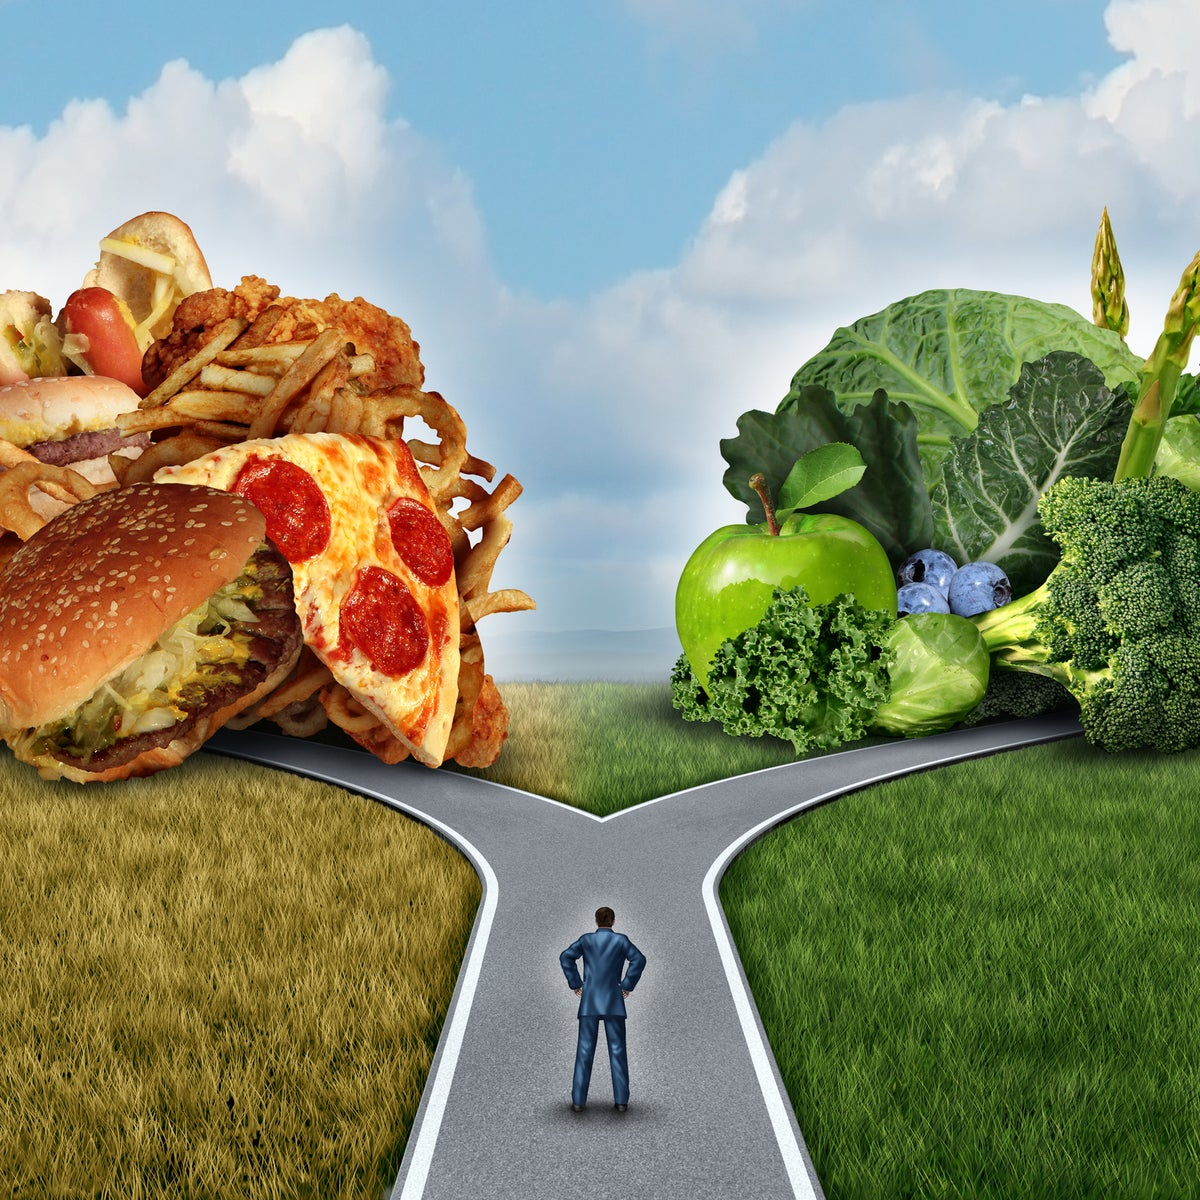 Illustrative image showing a man at a diet crossroads. He is to choose between a pile of junk food and vegetables.